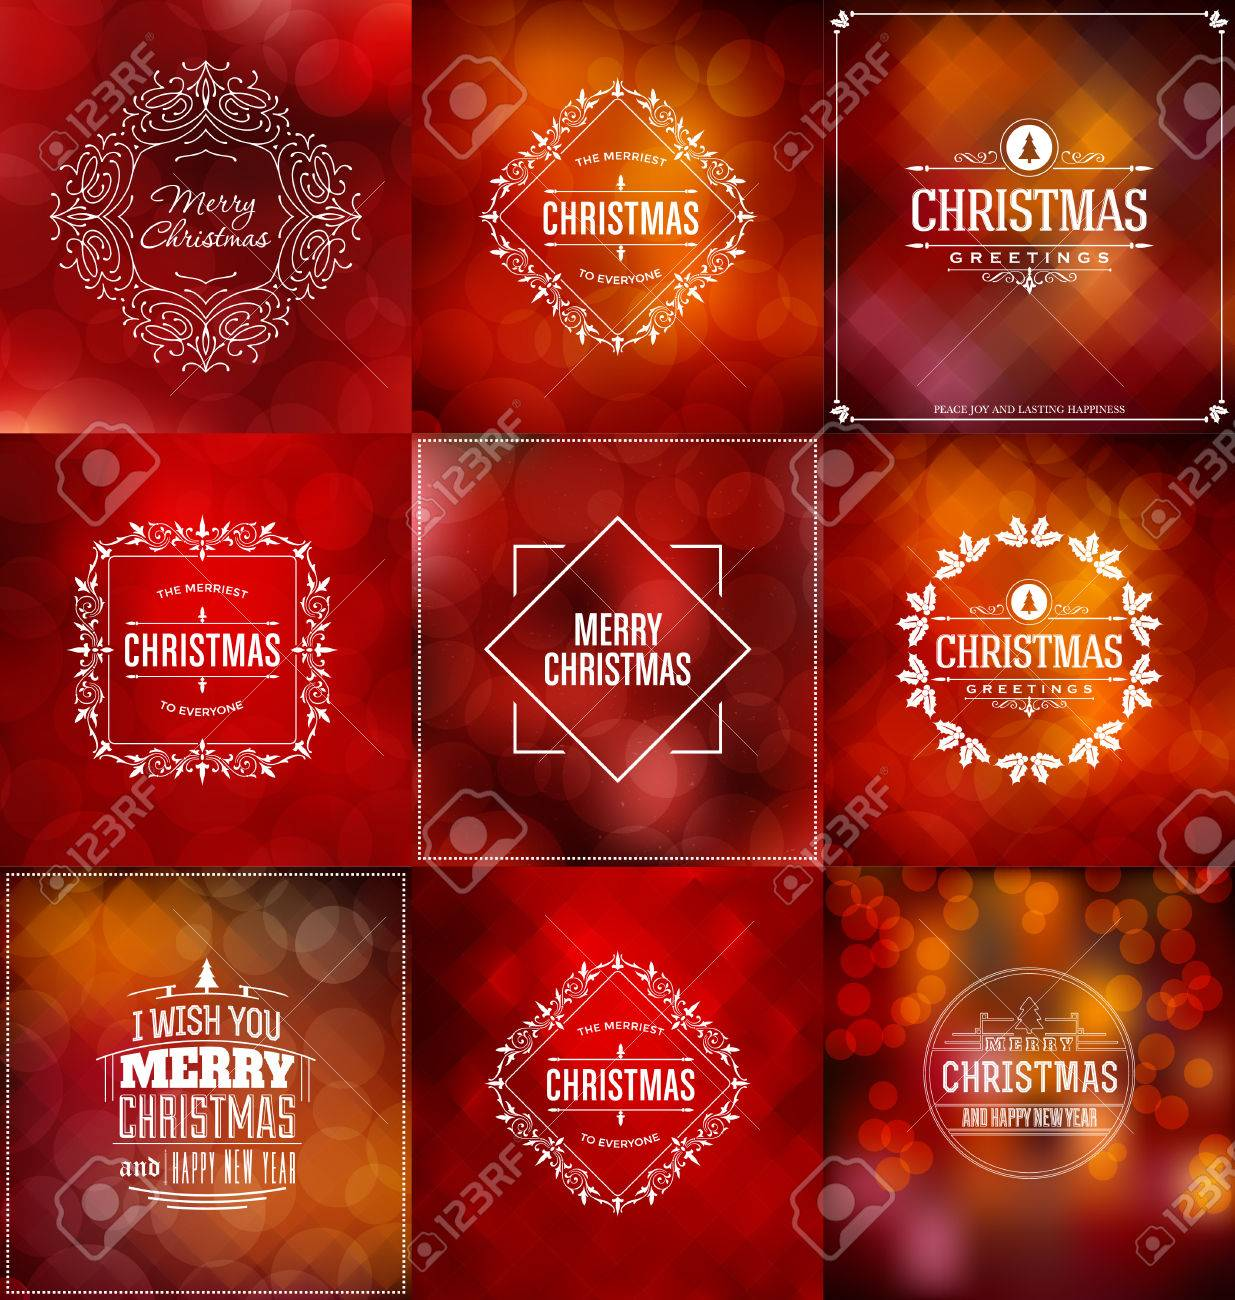 Christmas Card Design Set - Collection of Elegant Stylish Greetings with Typographic Elements - 48761357